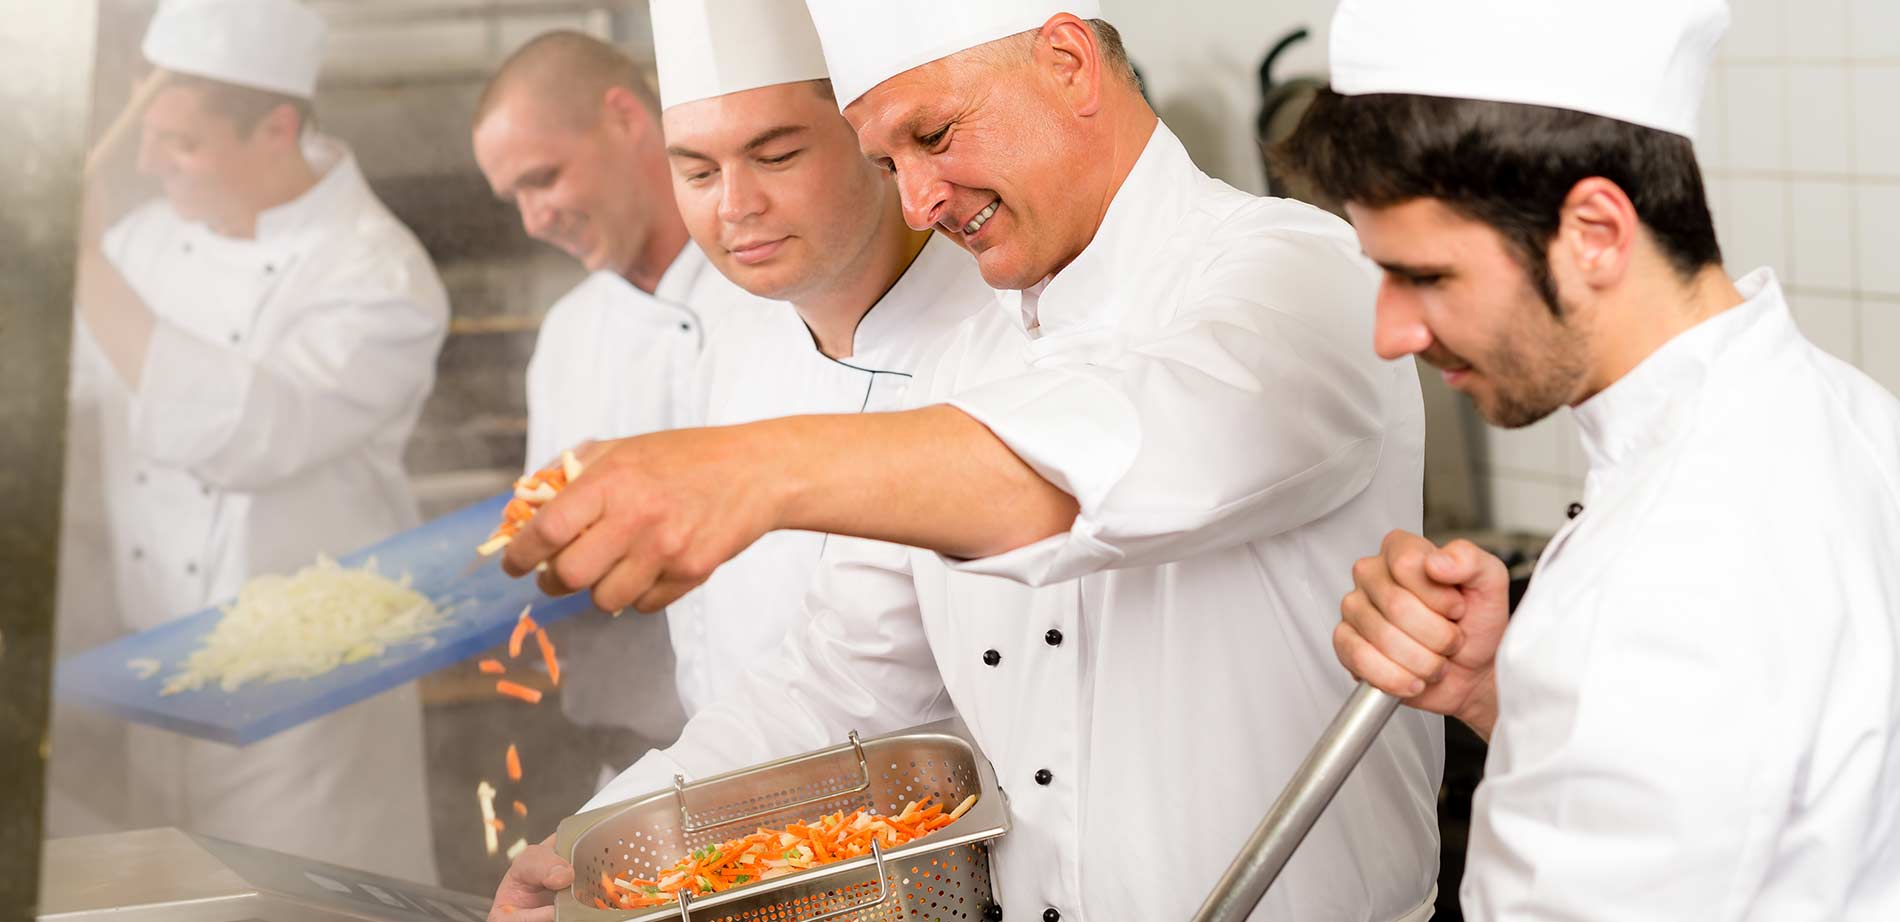 Chefs cooking in a commercial kitchen together.